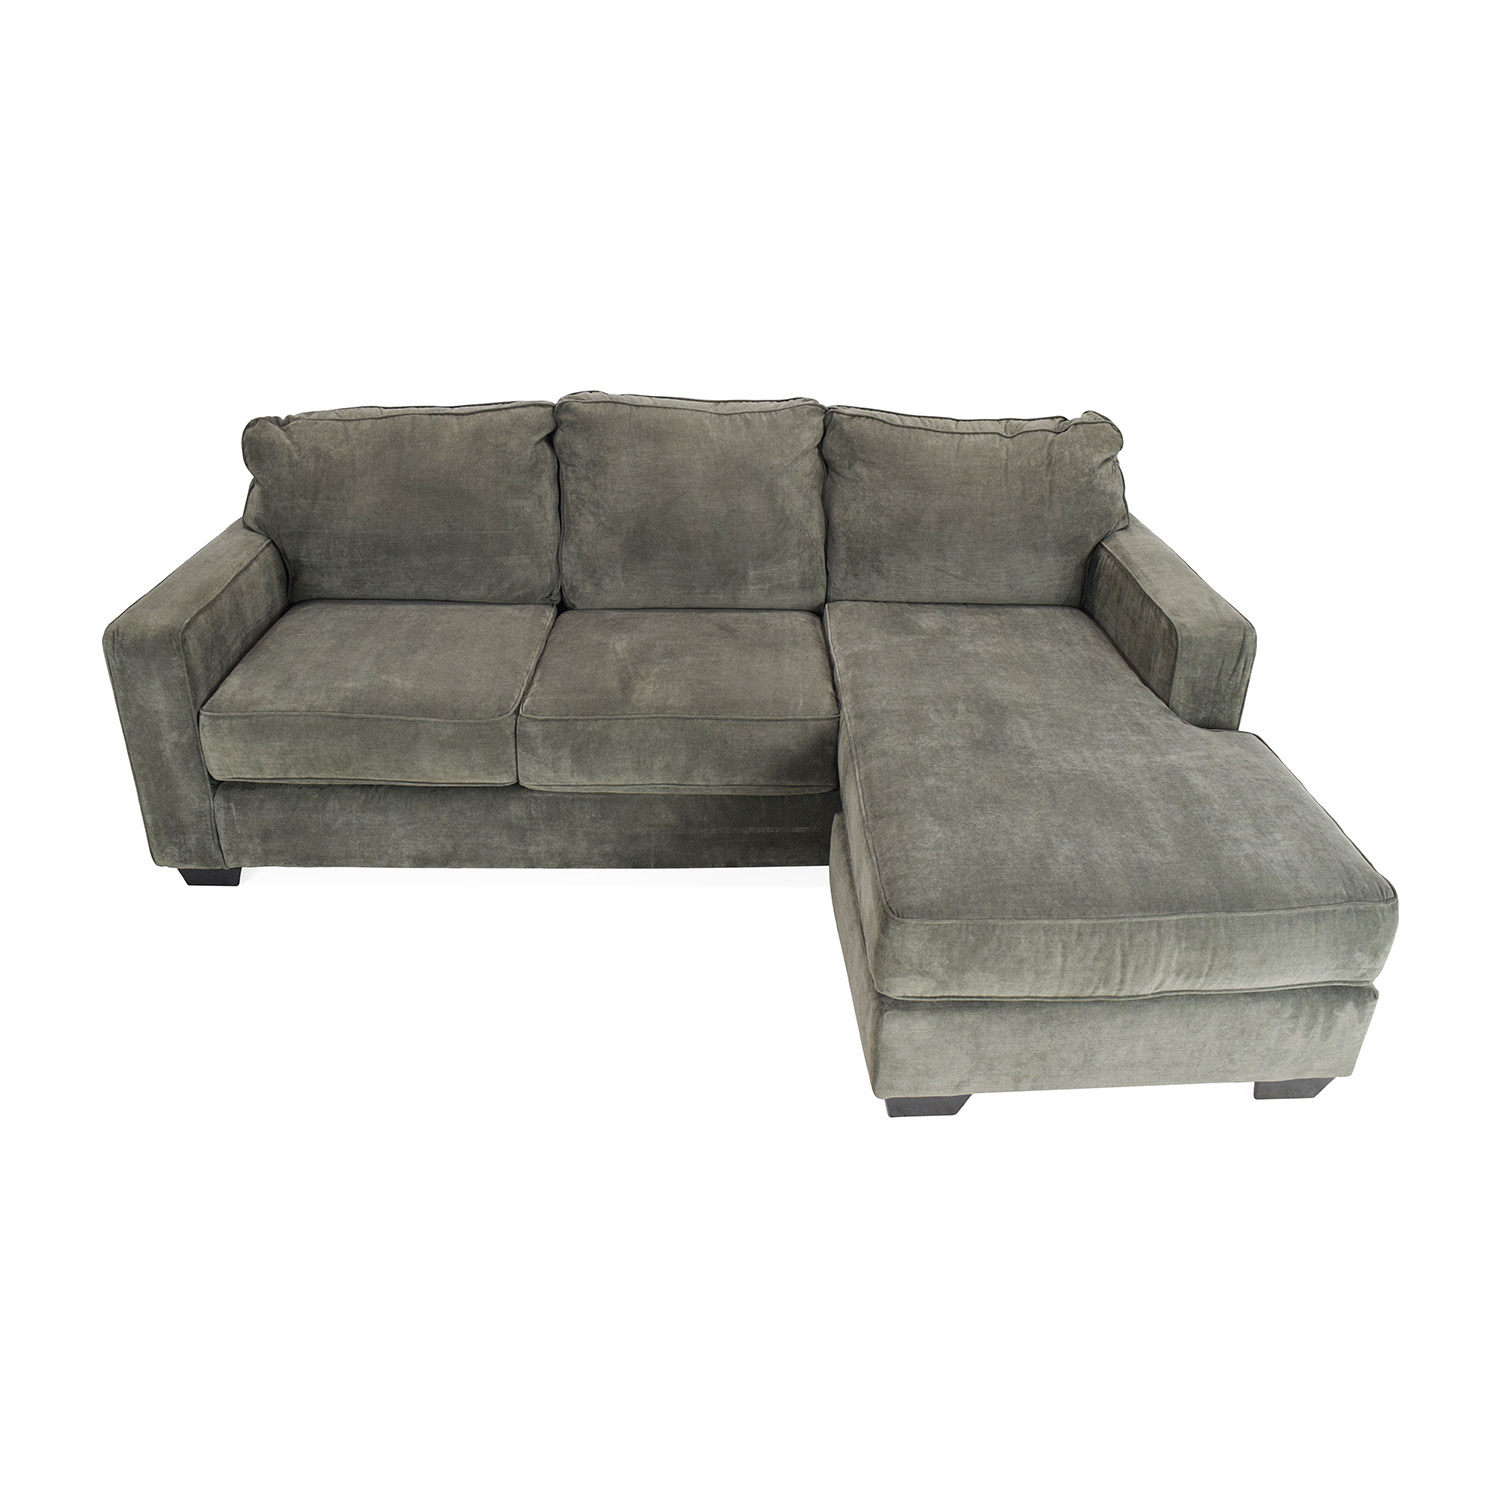 Jennifer Convertibles Jennifer Convertibles Sectional Sofa  nyc